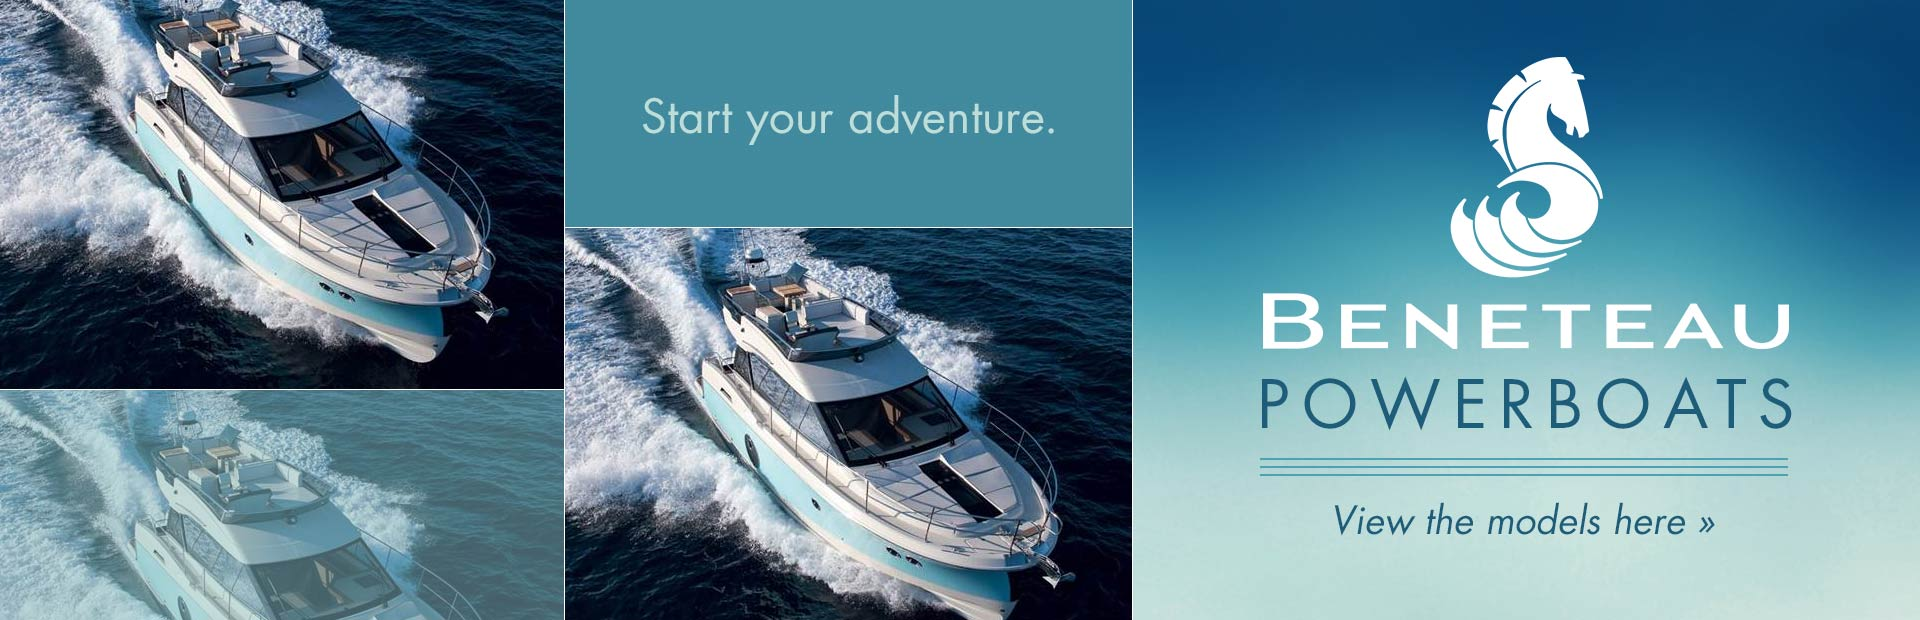 Beneteau Powerboats: Click here to view the models.